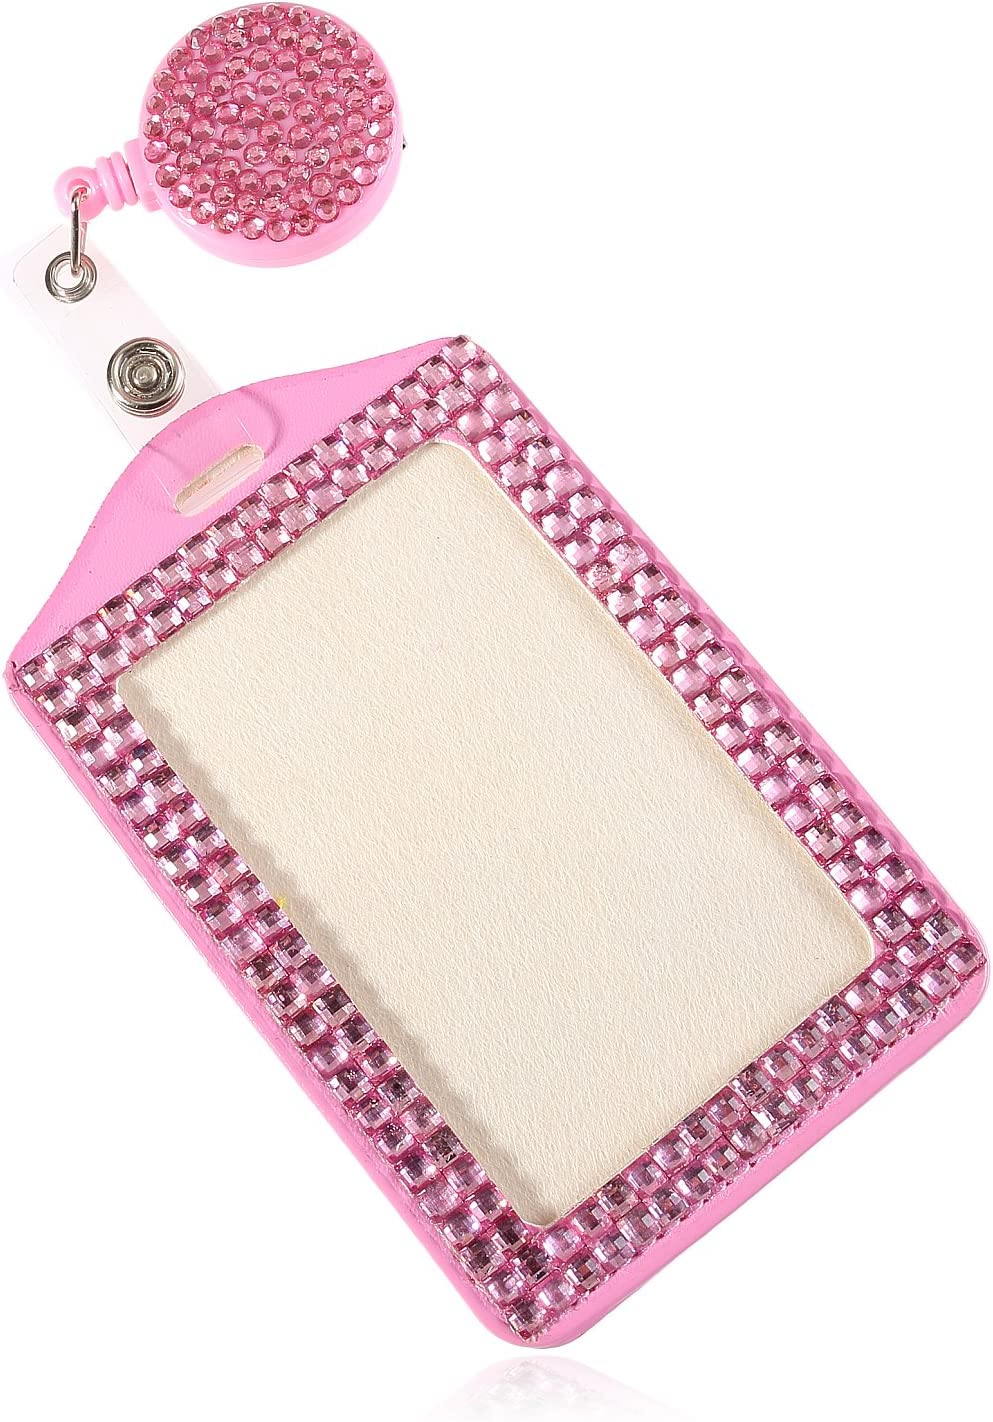 Fixed price for sale Las Vegas Mall Fashion Baby Pink Bling Crystal Cute Gift Rhineston Neck Lanyard